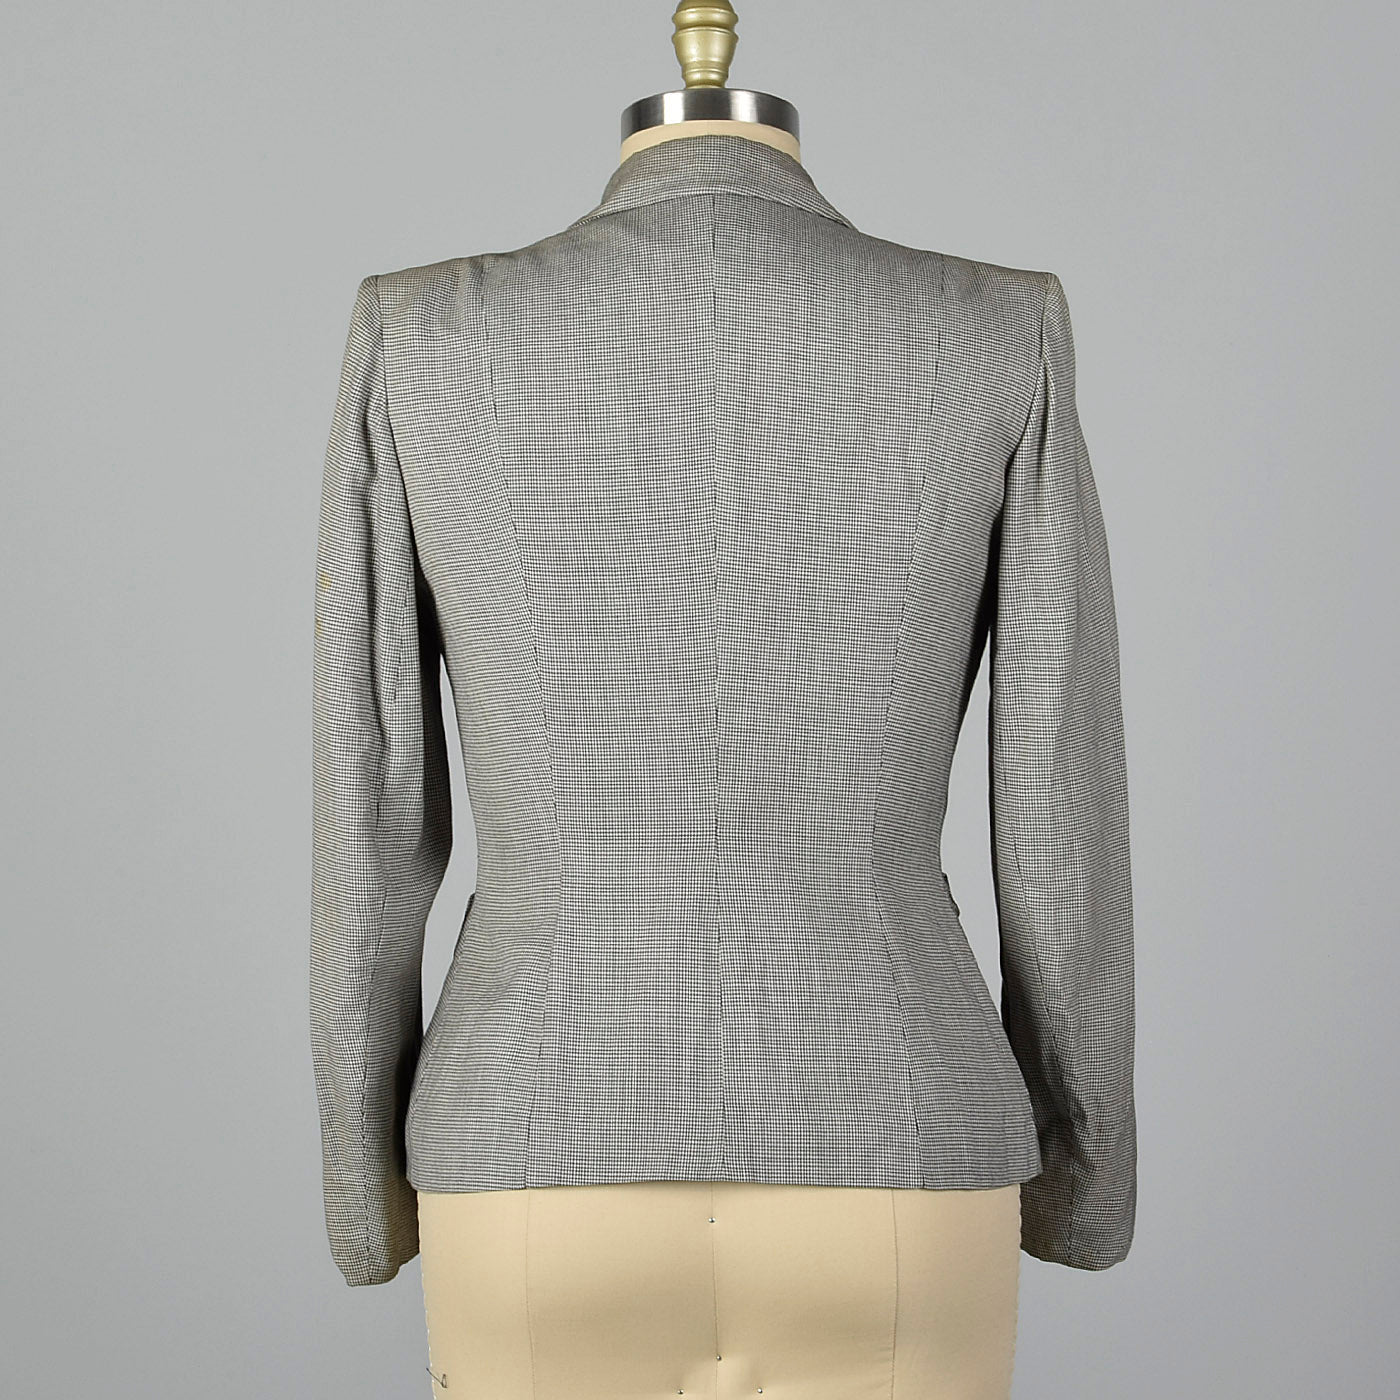 1950s Black and White Houndstooth Jacket